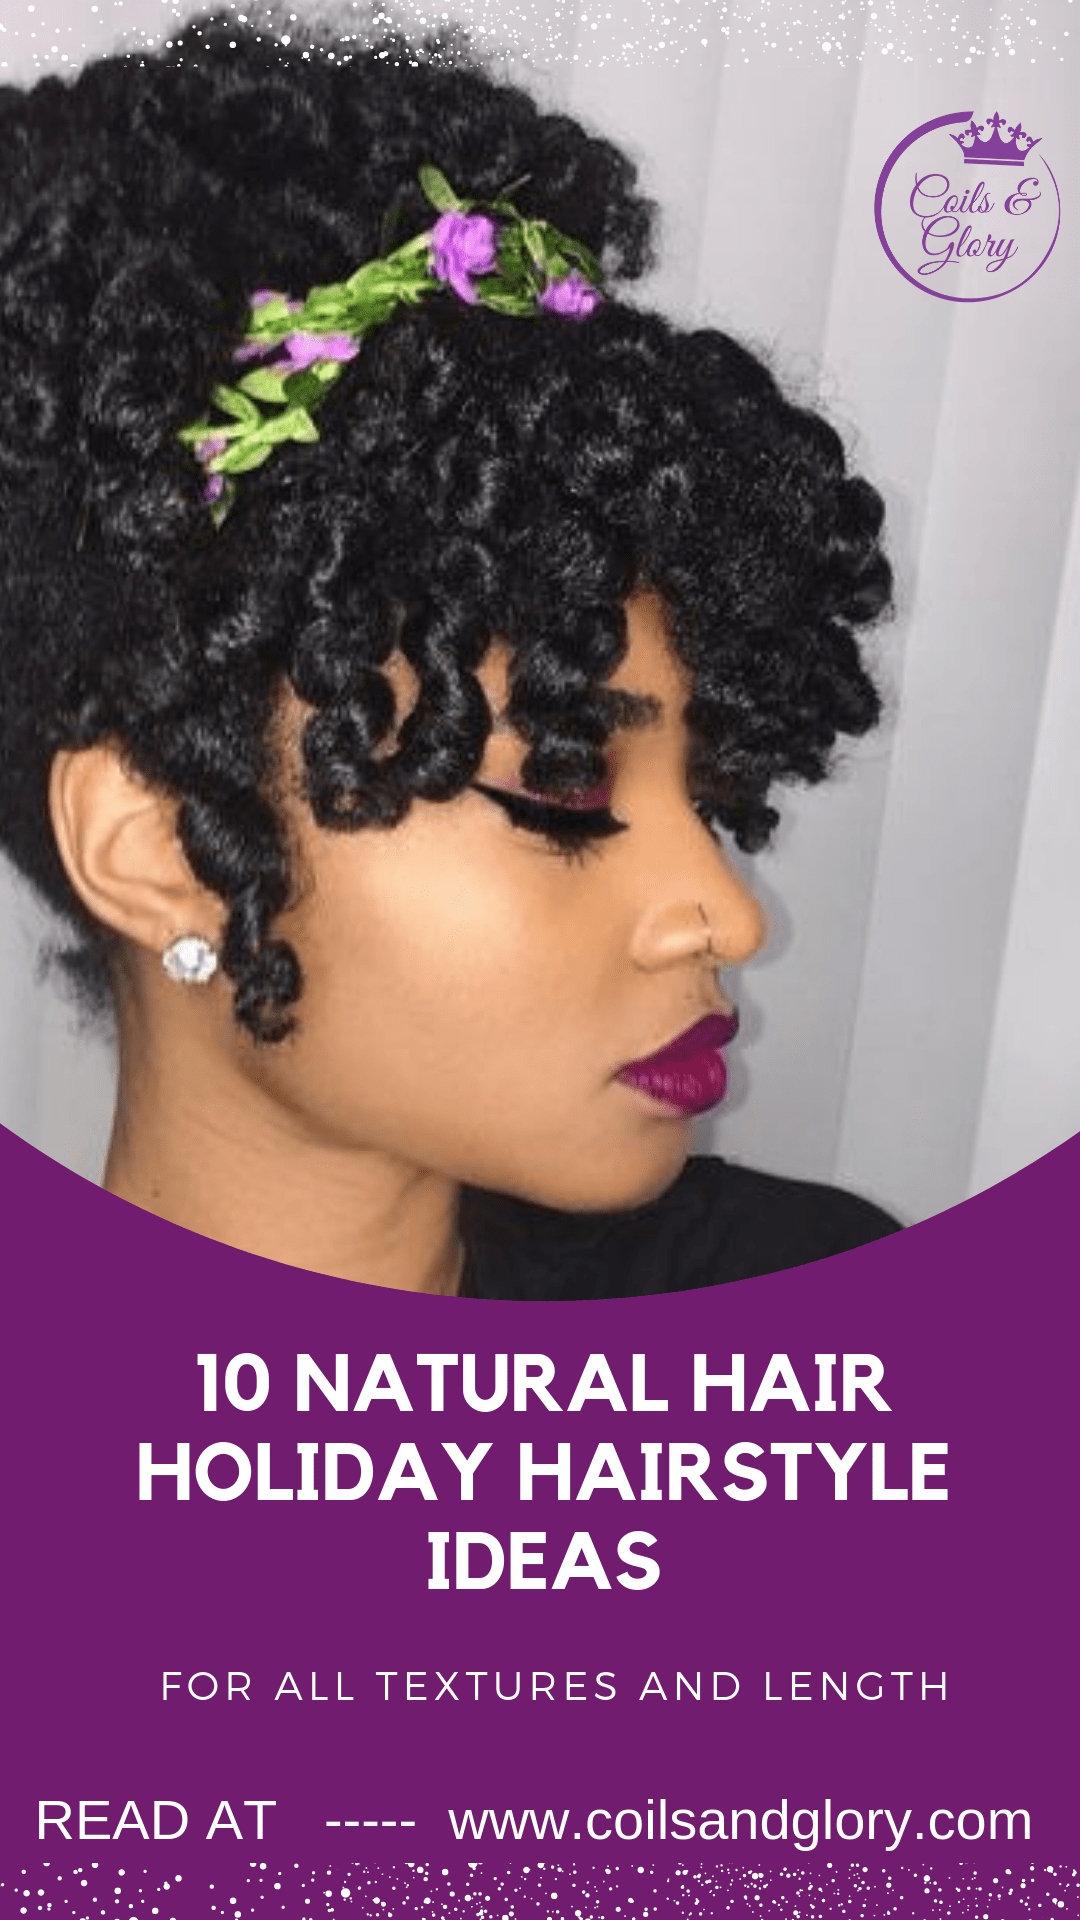 10 Beautiful Holiday Natural Hairstyles For All Length Textures